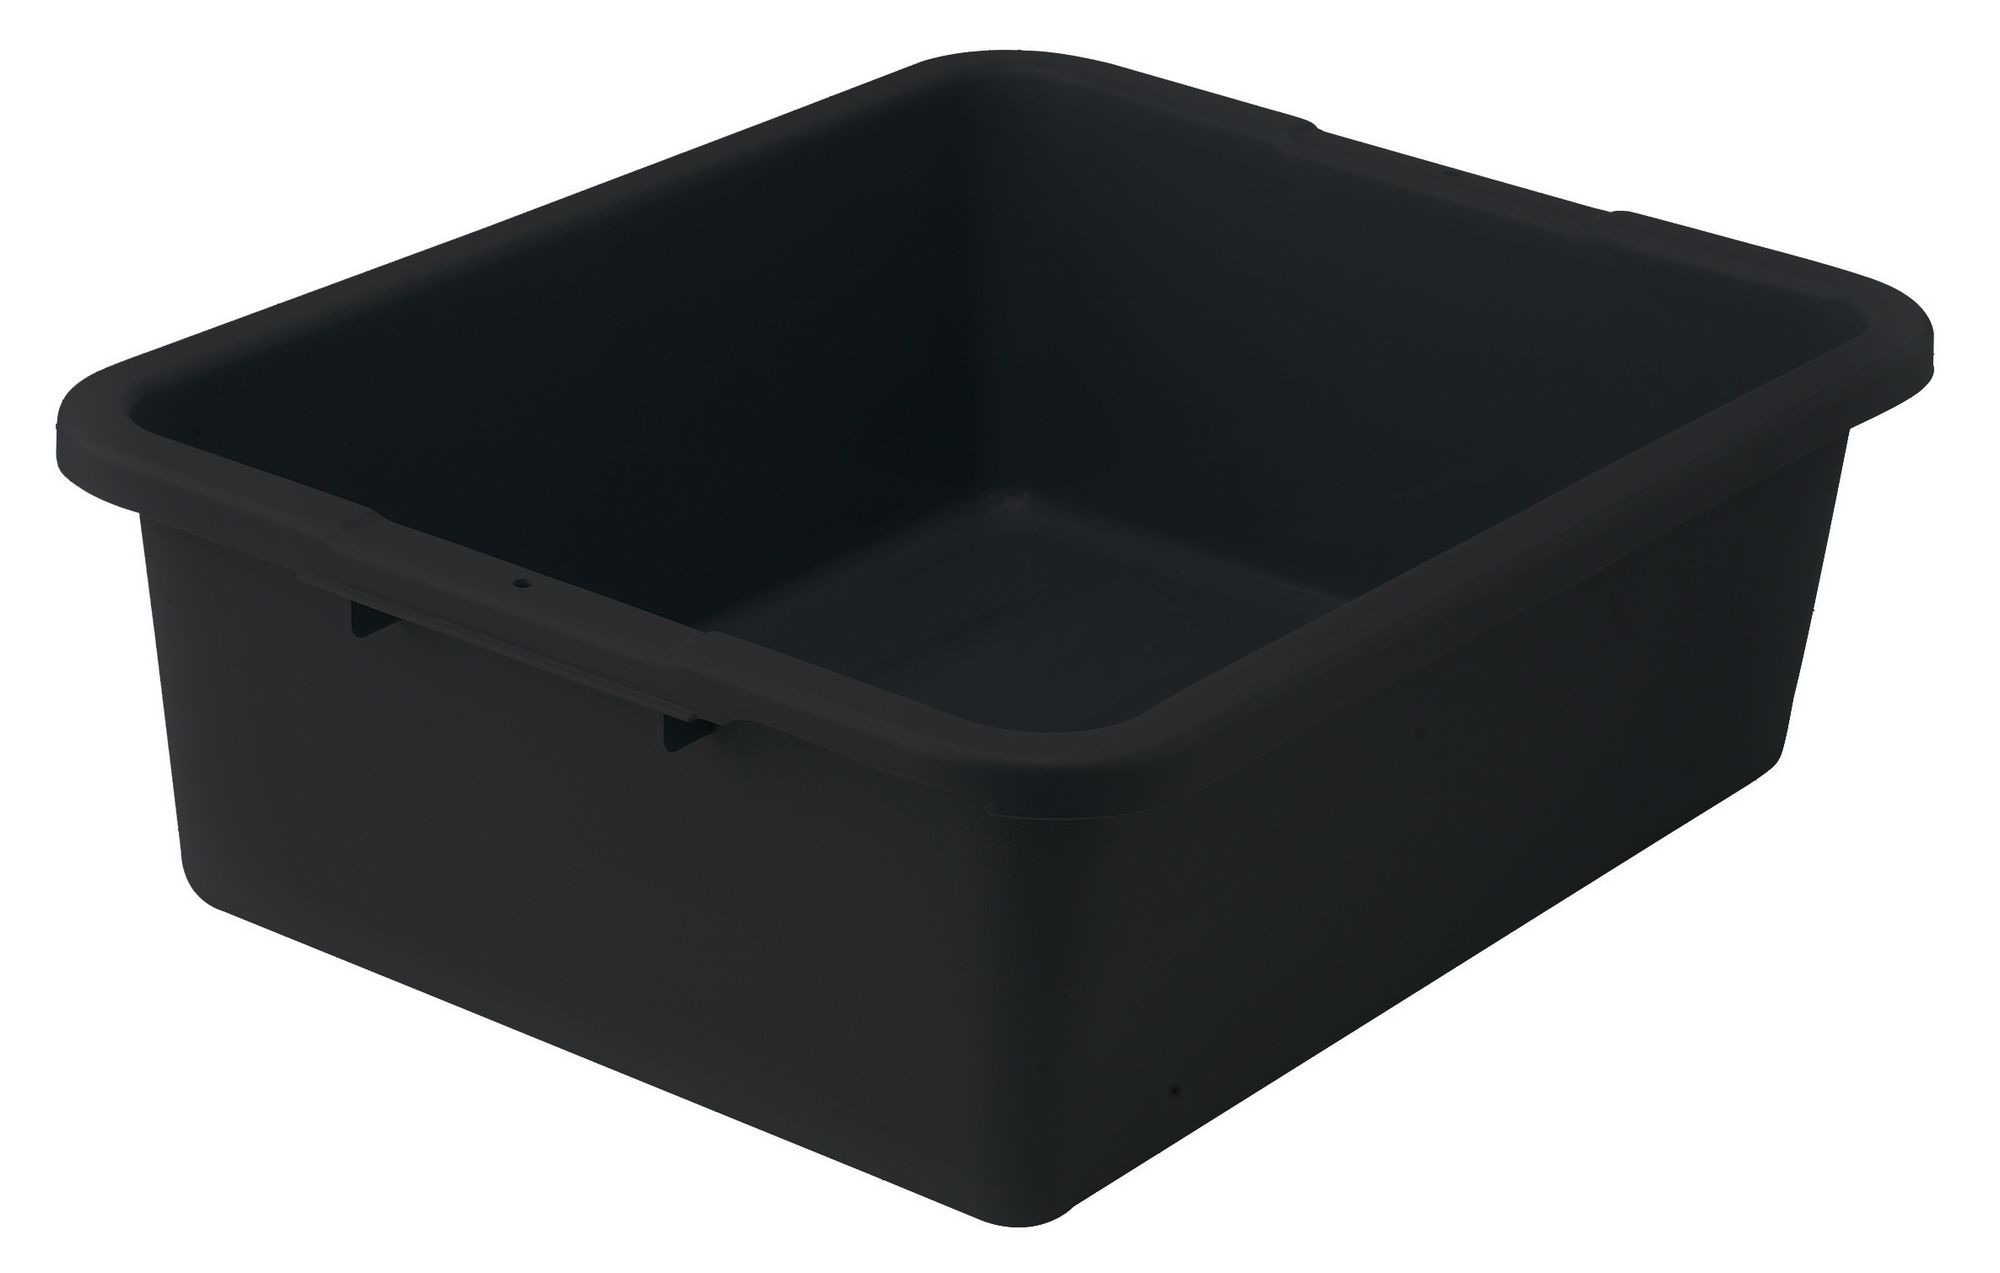 Heavy-Duty Dish Box (20.75